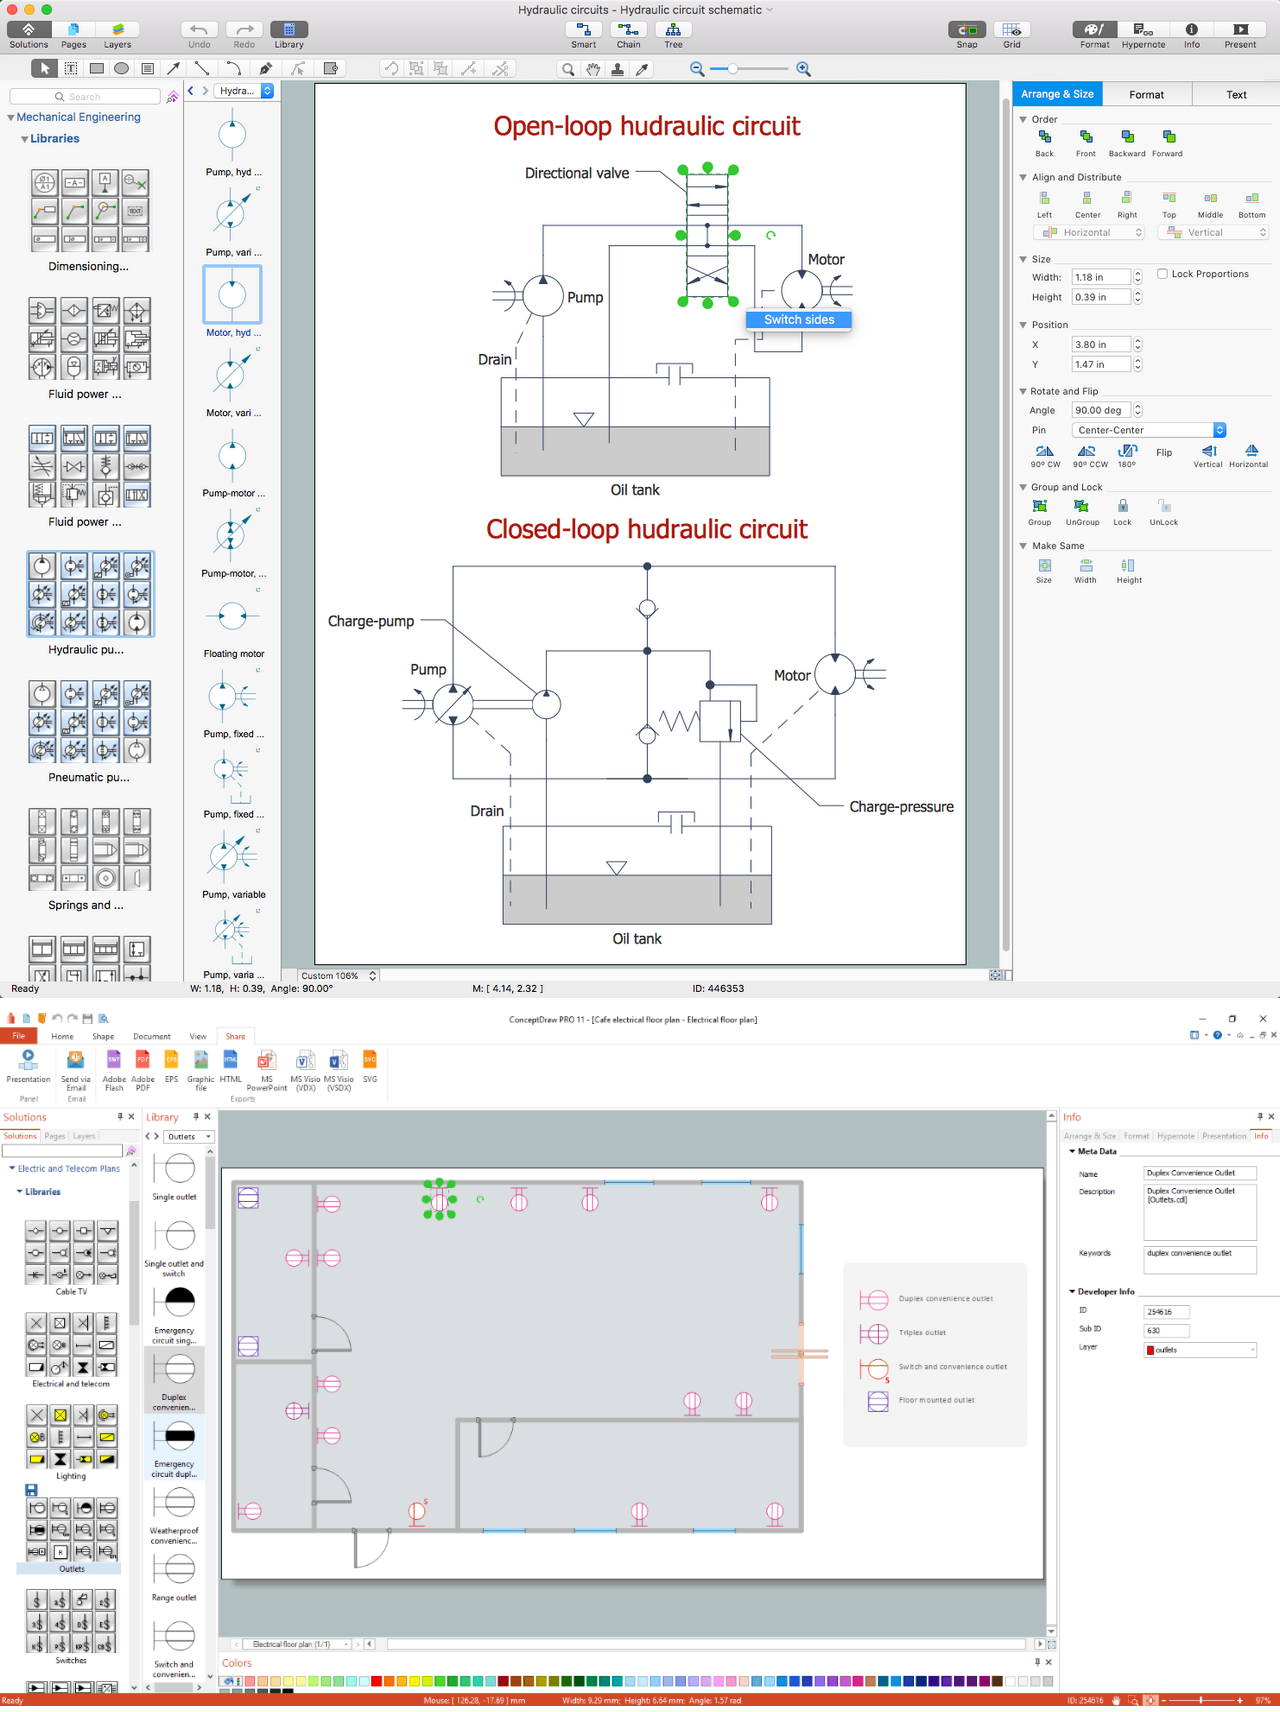 cad drawing software for making mechanic diagram and electrical rh conceptdraw com Light Switch Wiring Diagram House Electrical Wiring Diagrams